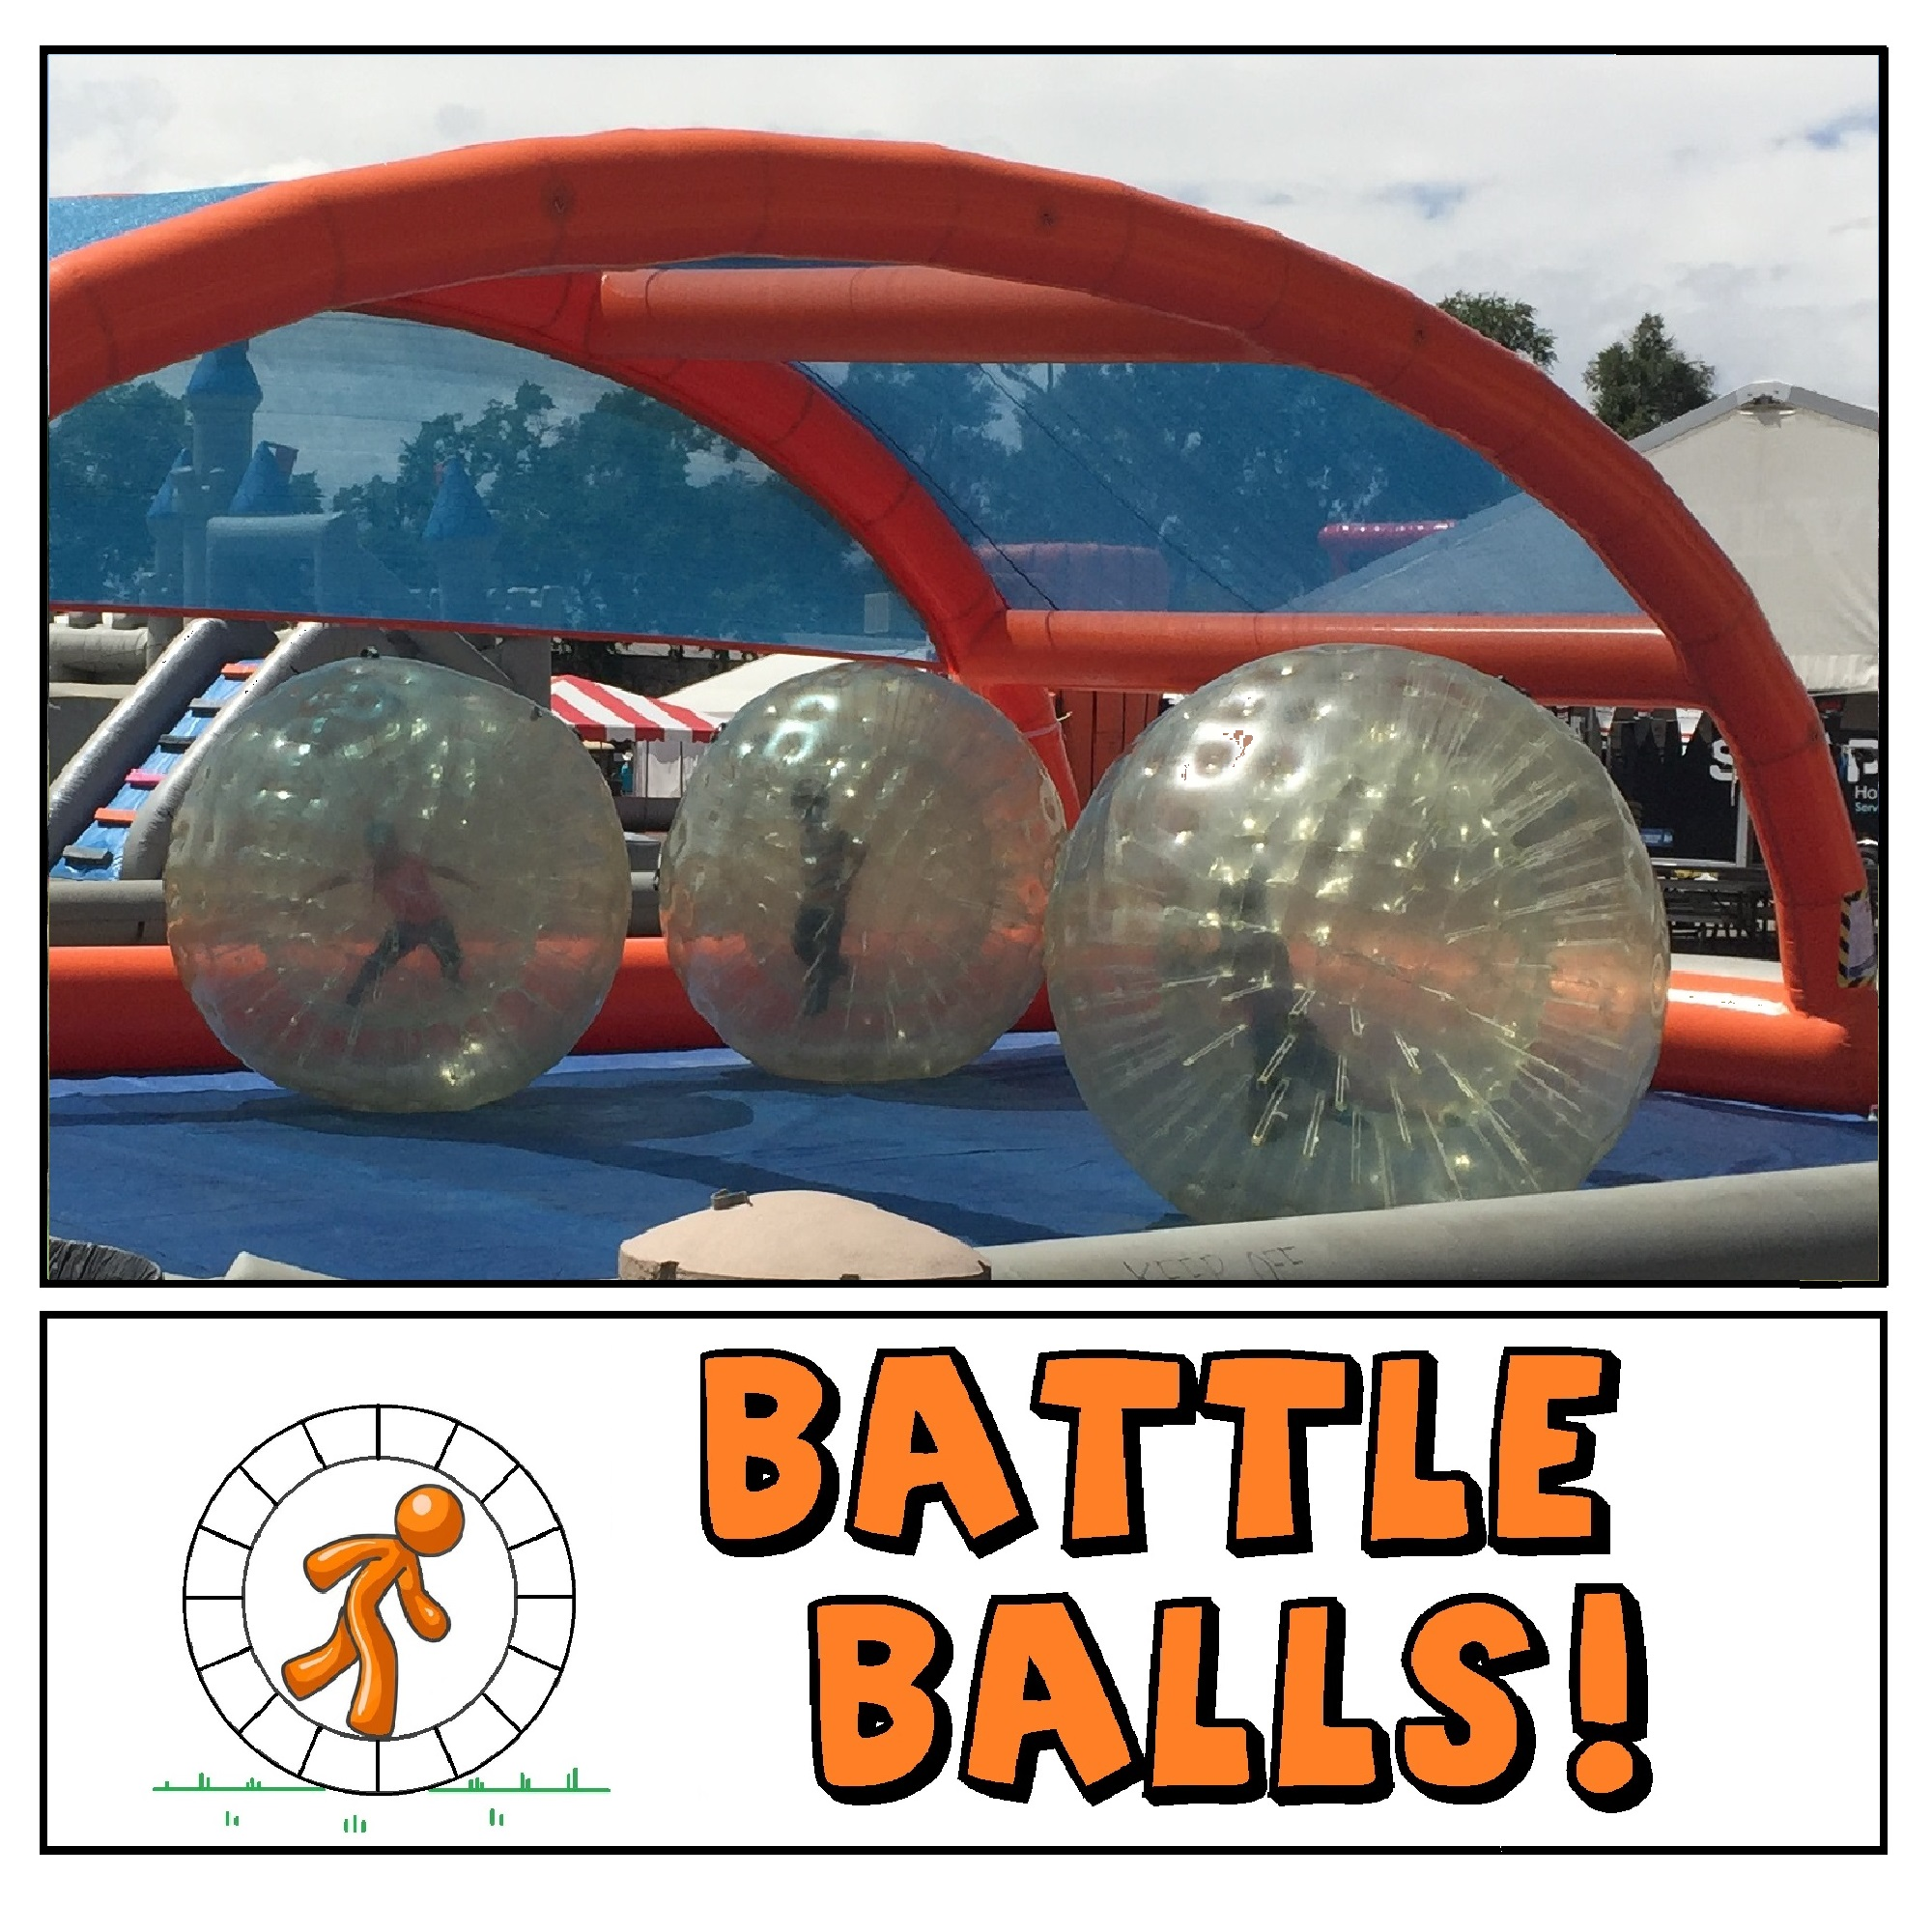 Battle Balls Arena